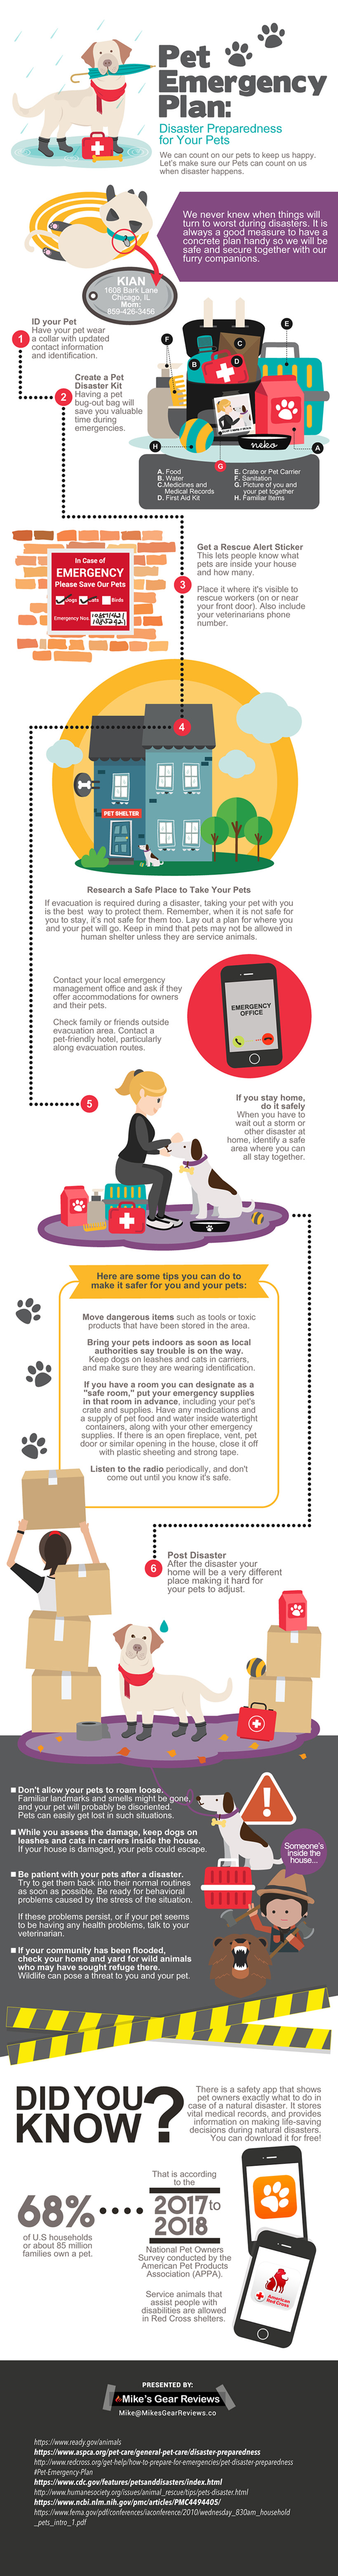 Pet Emergency Plan: Disaster Preparedness for Your Pets